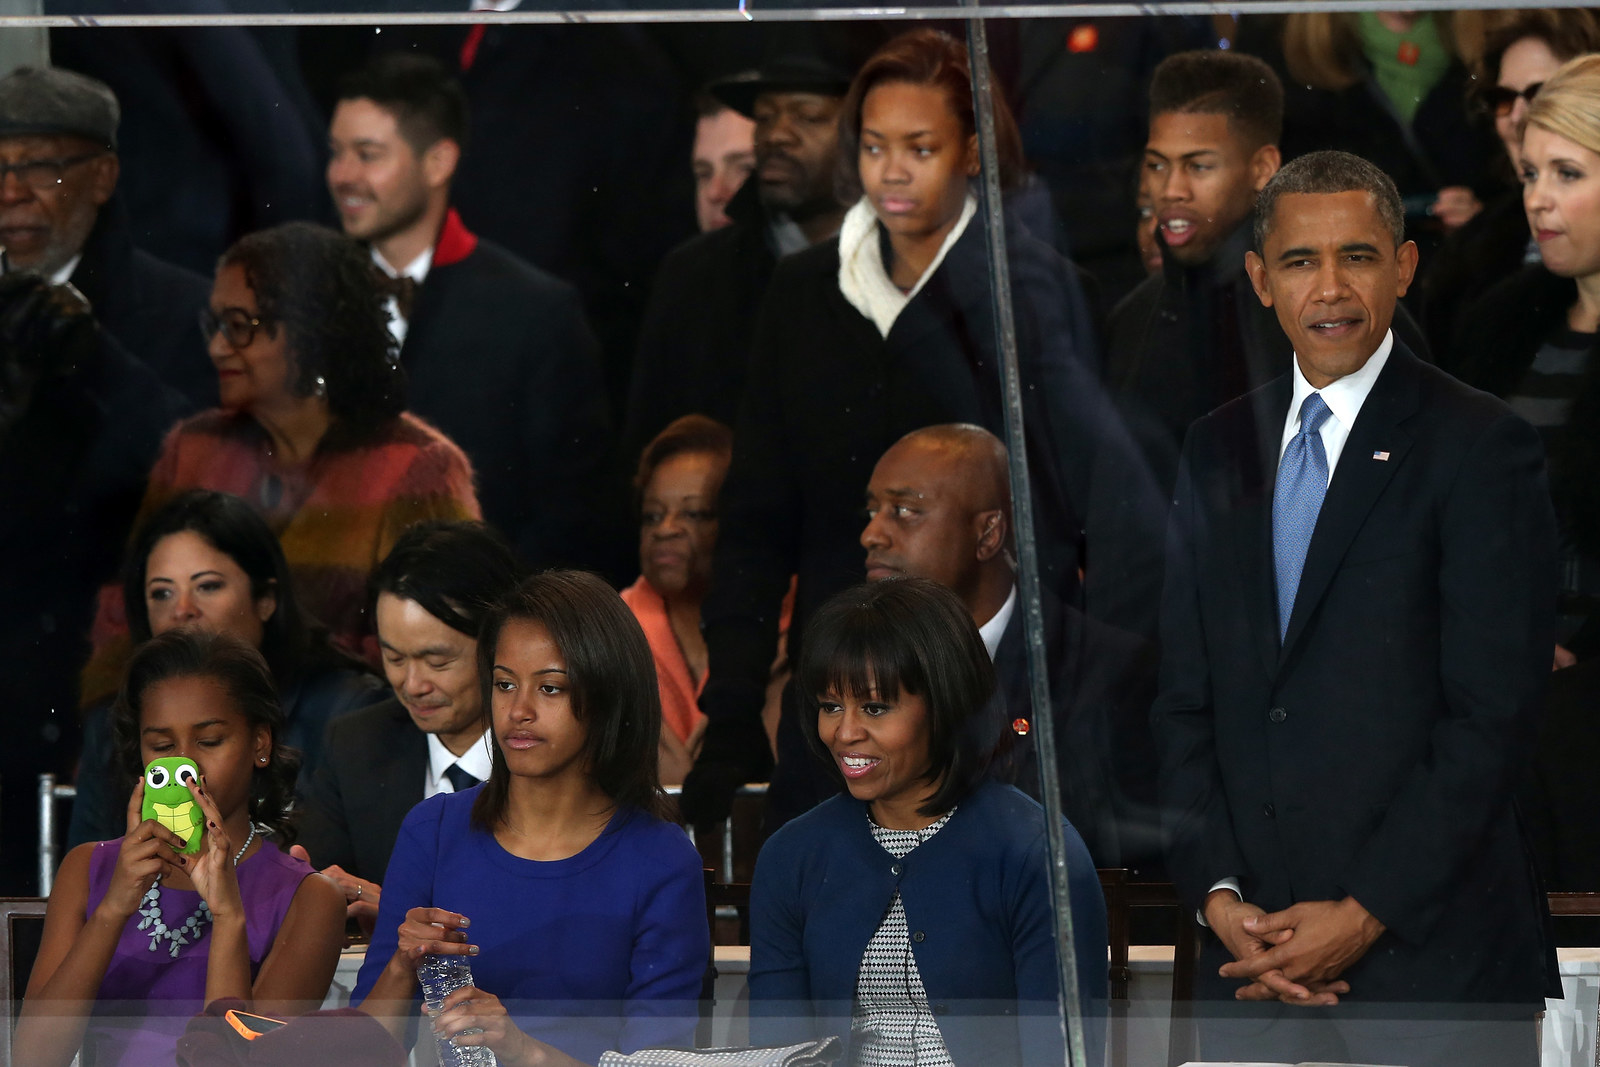 Sasha and malia inauguration pictures 9 Crazy Cross Eye 3D Photography Images